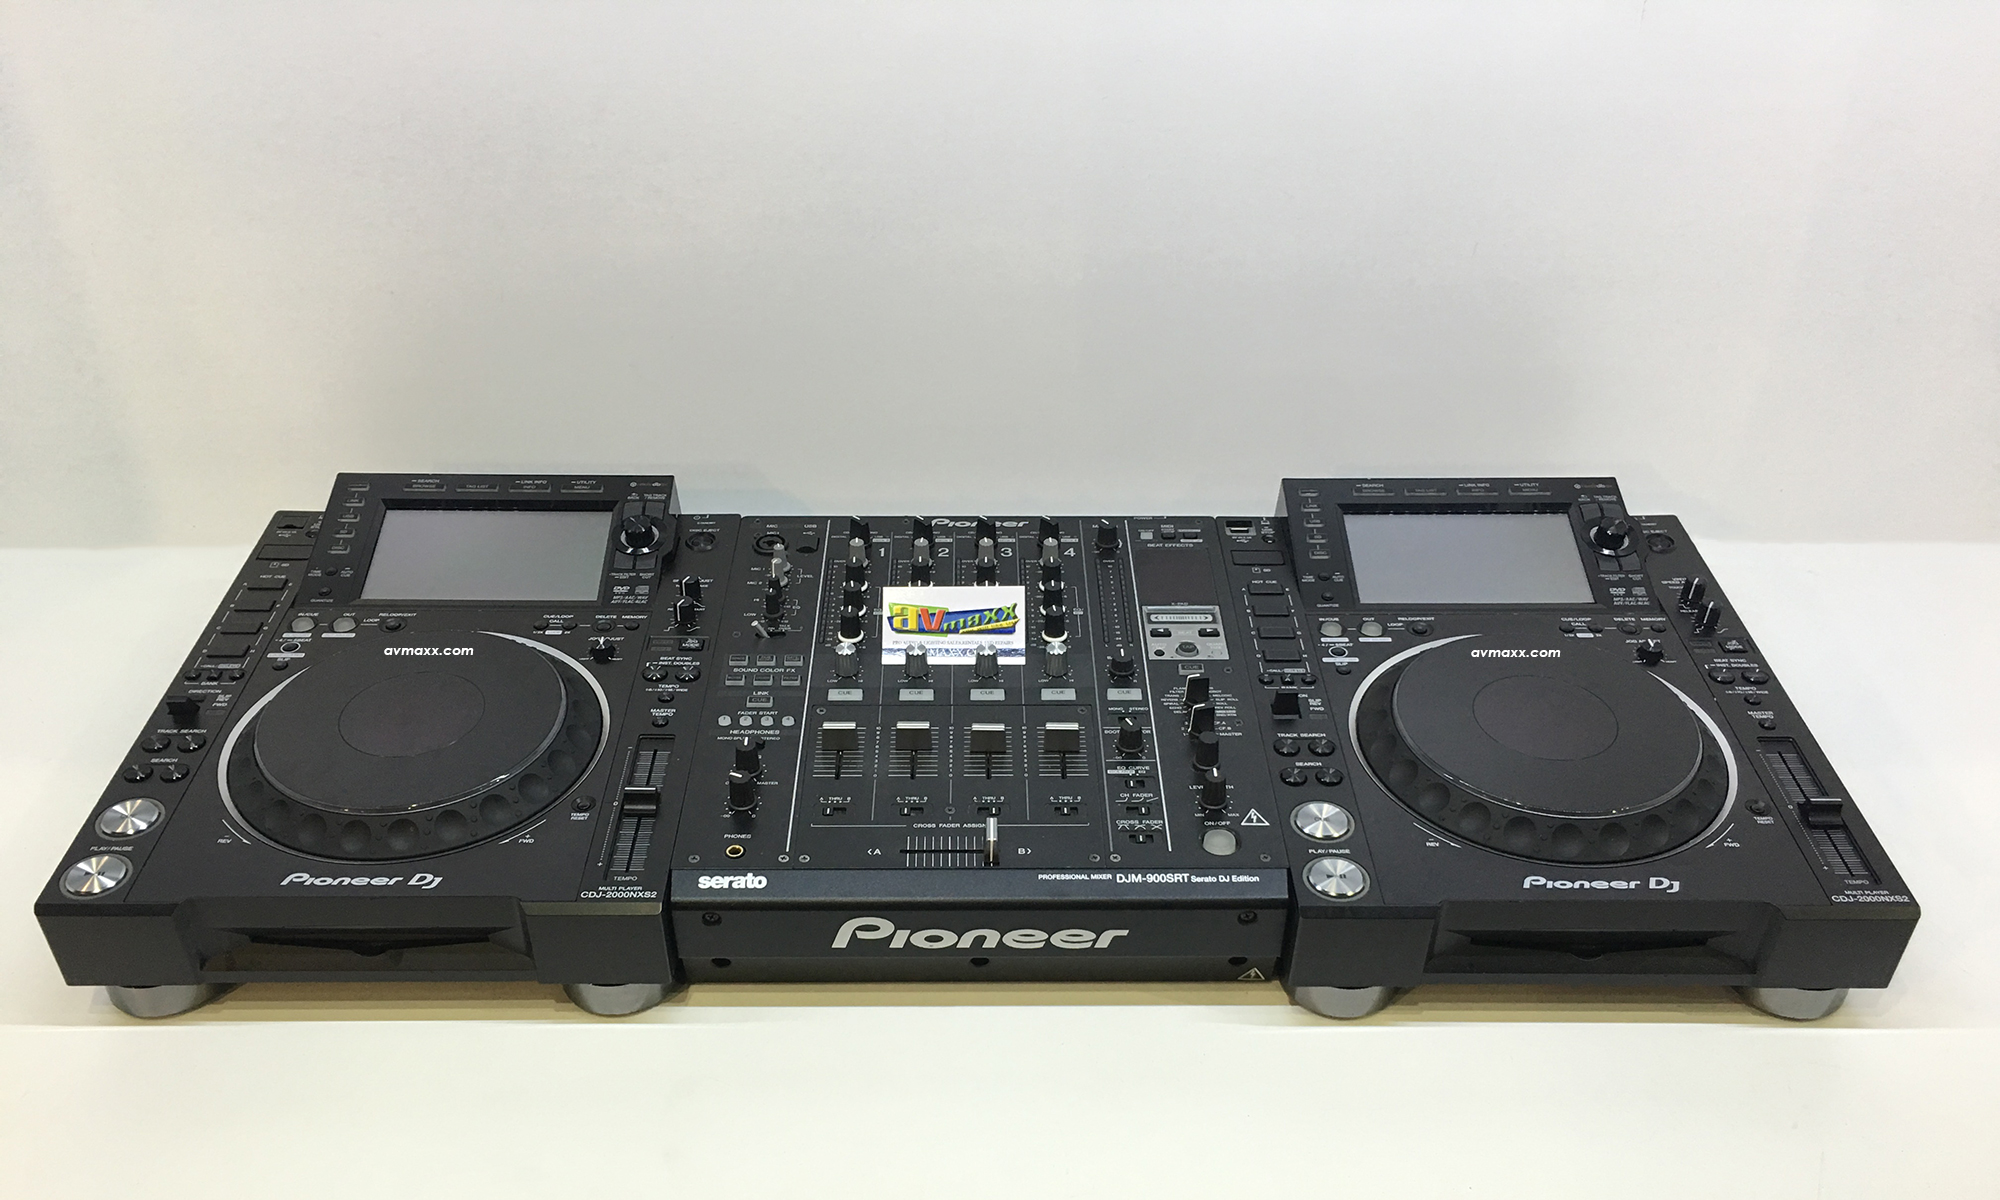 pioneer dj cdj 2000nxs2 djm 900srt used pack. Black Bedroom Furniture Sets. Home Design Ideas